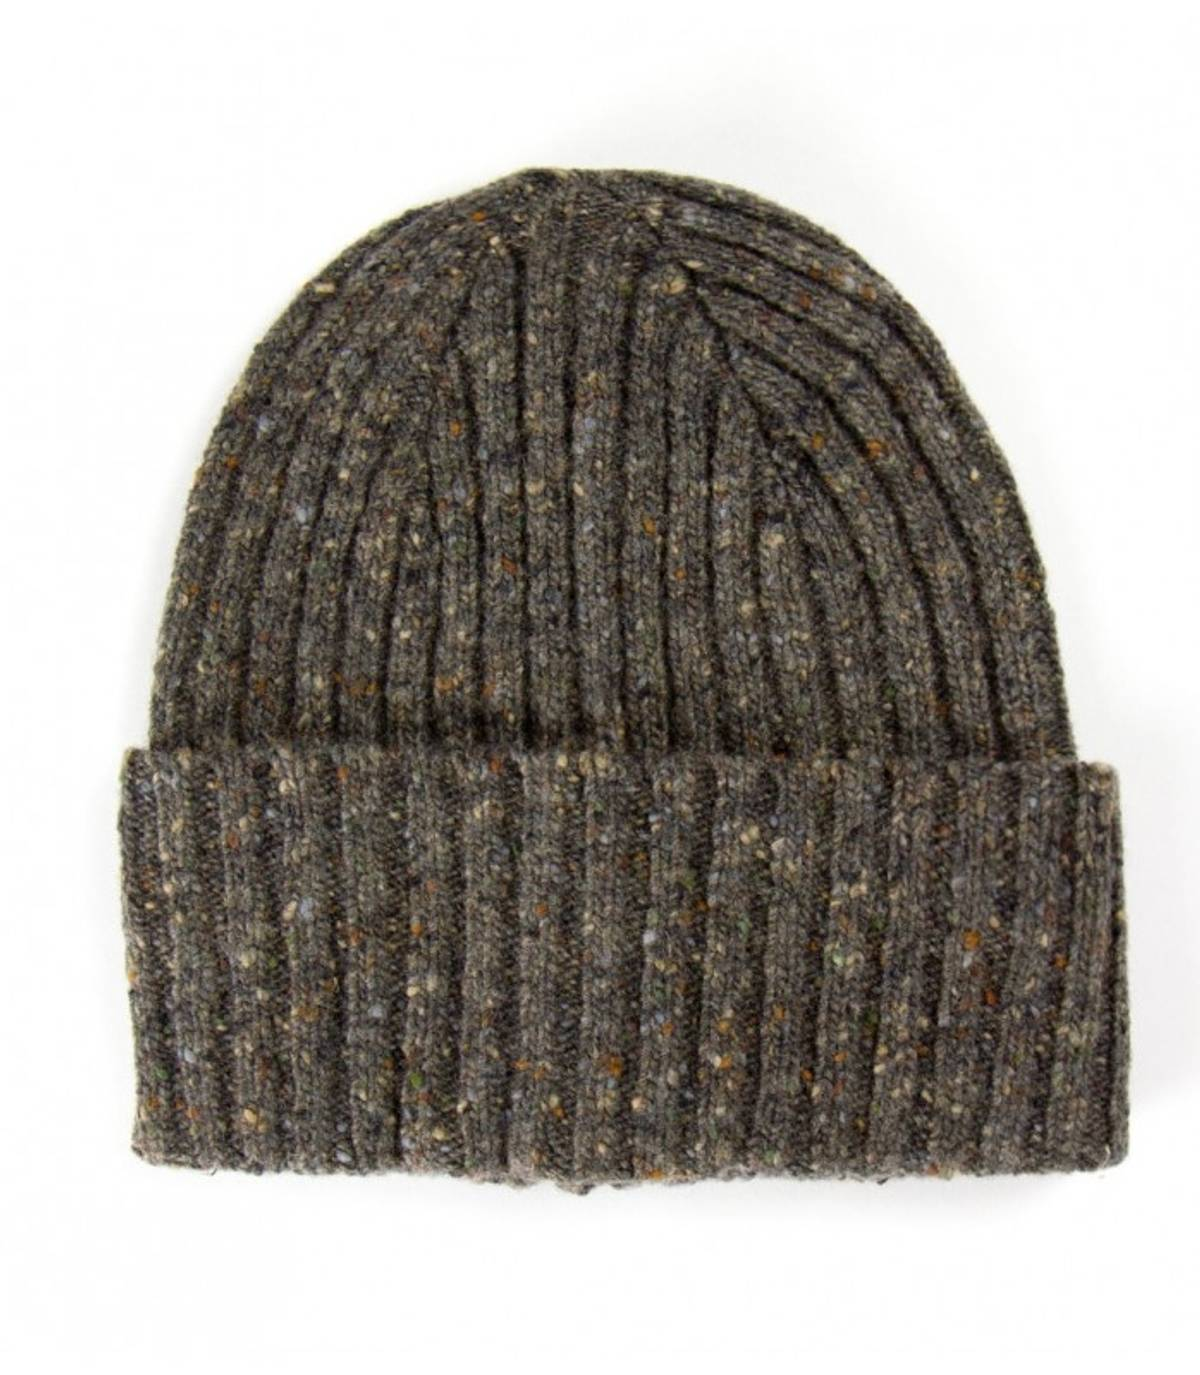 Drakes Donegal Beanie (Grey) Size one size - Hats for Sale - Grailed 44205868f8f